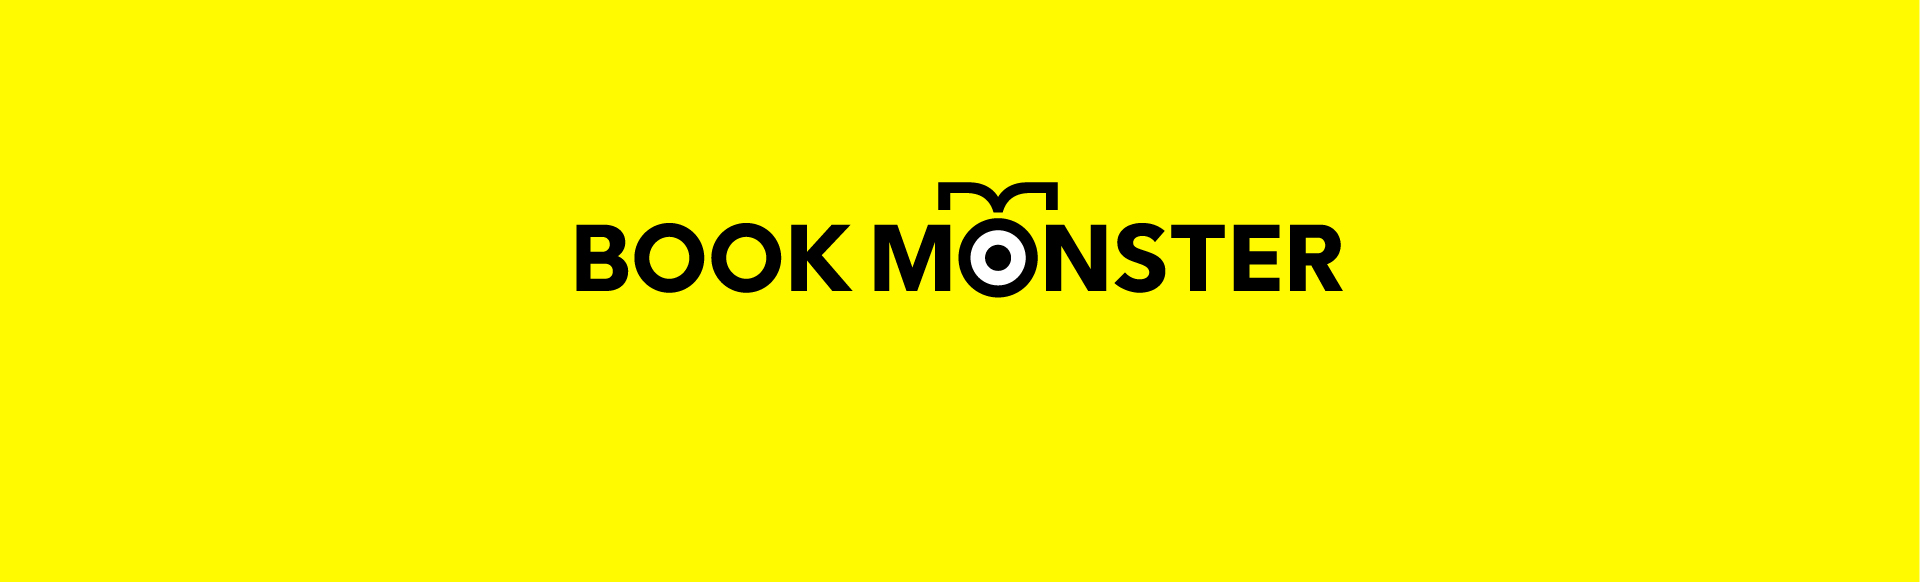 bookmonster_0-02